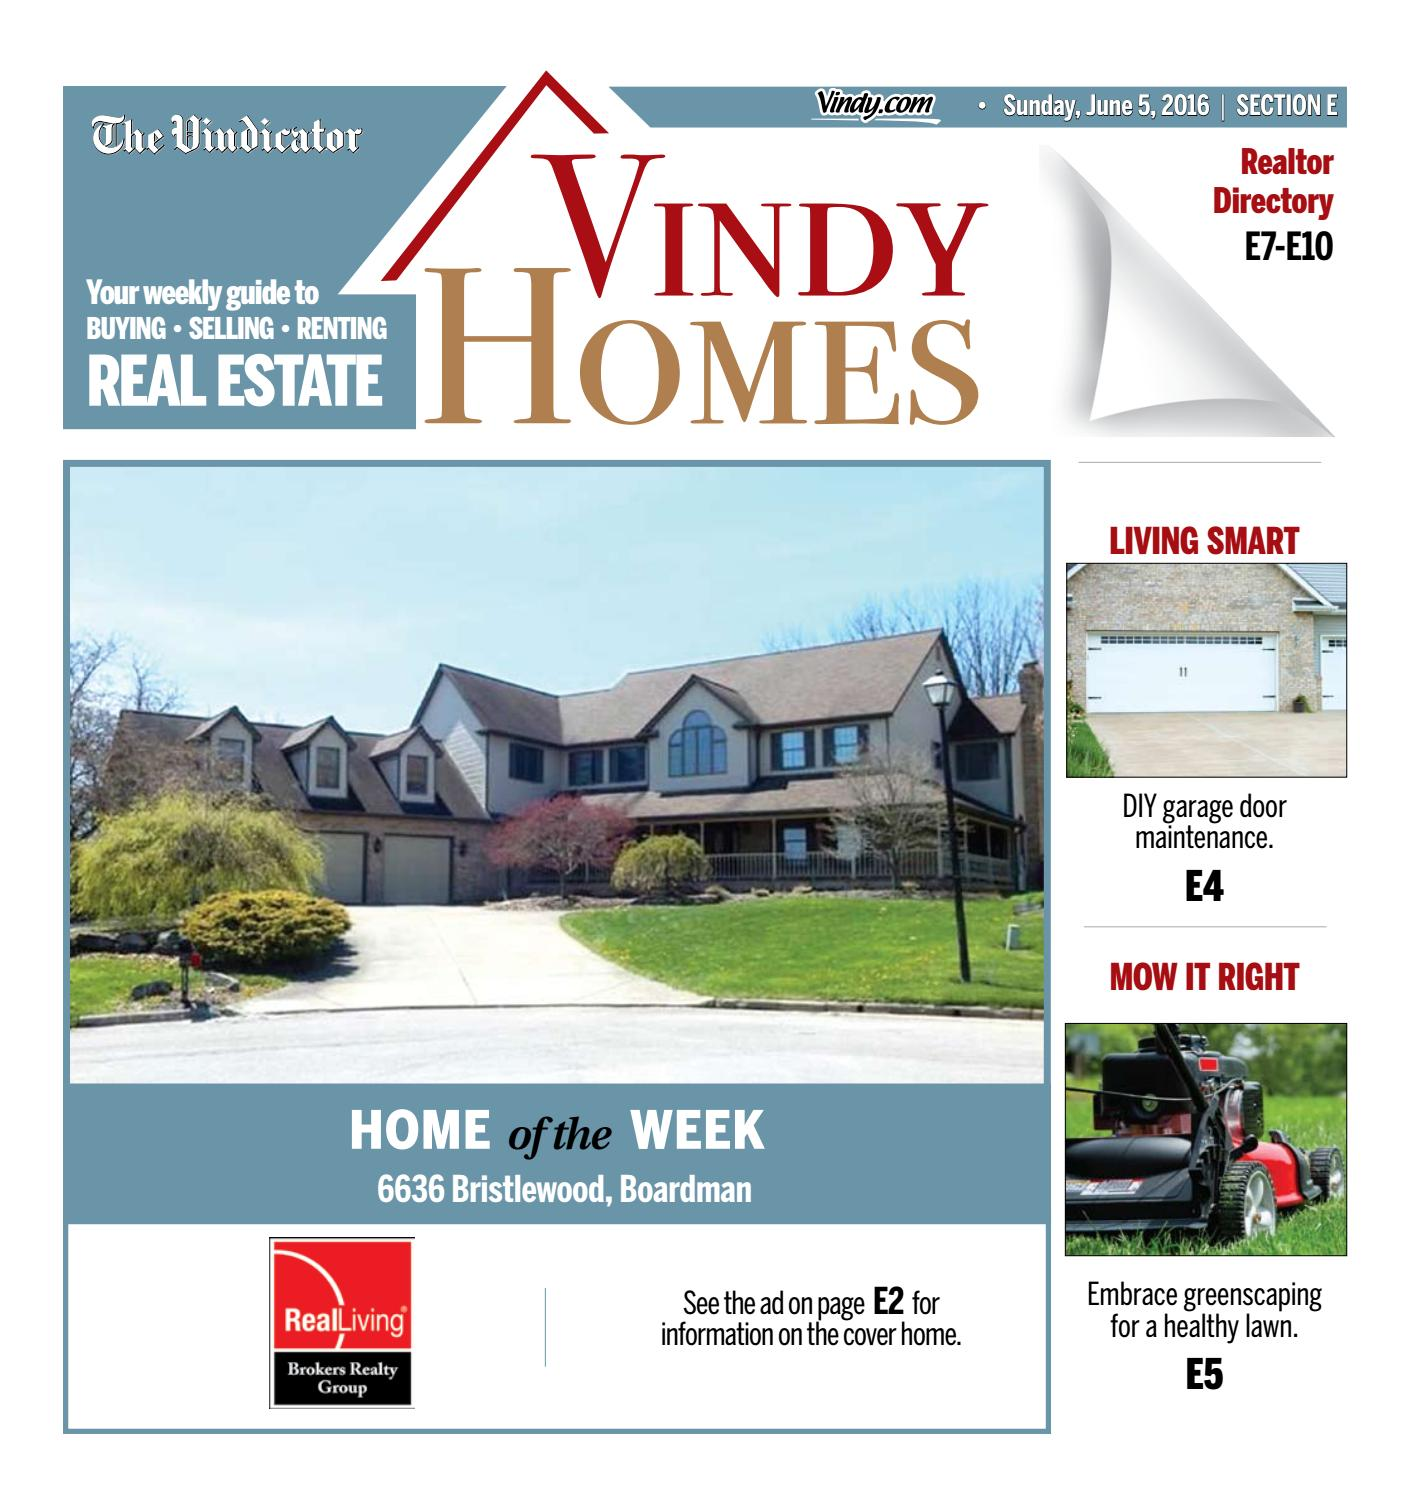 Vindy Homes - June 5, 2016 by The Vindicator - issuu